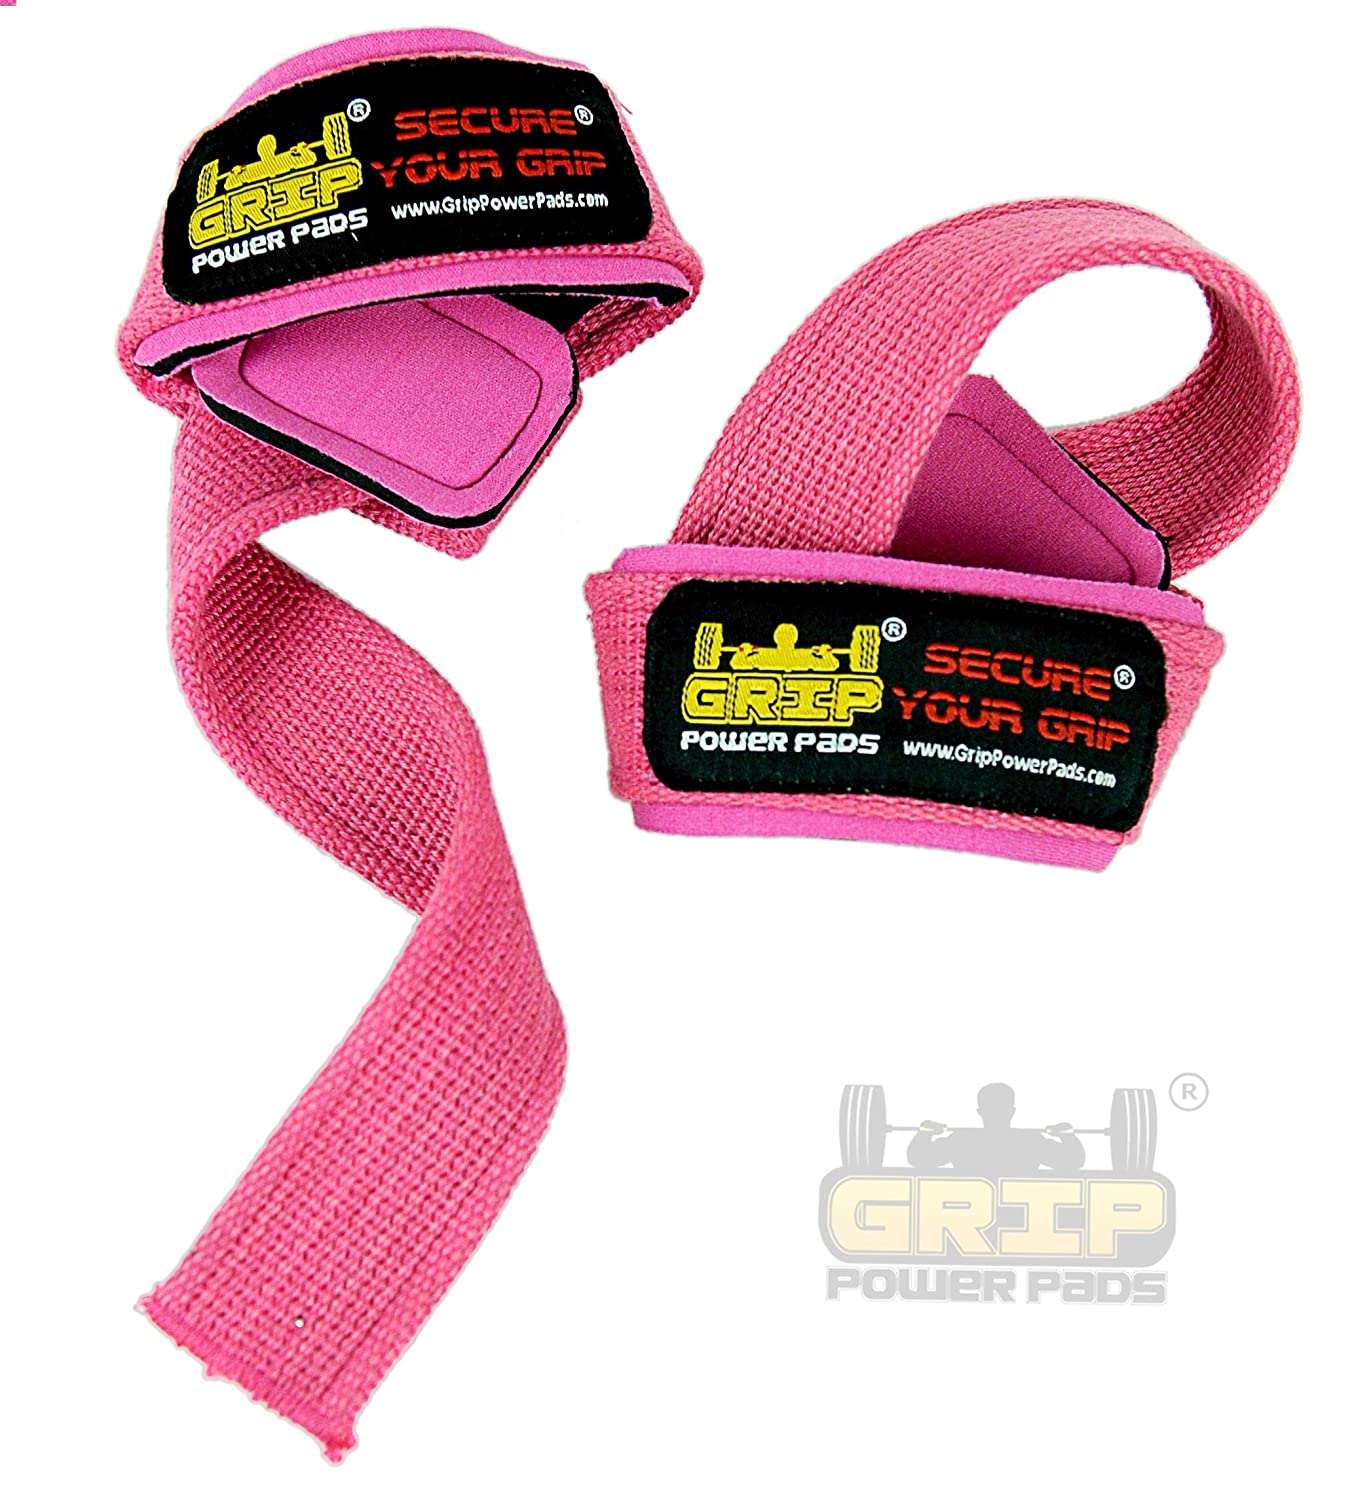 PINK Women Classic Heavy Duty Neoprene Padded Weight Lifting Straps, ☆EXTRA CUSHION☆ At the ✓Carpal Tunnel ✓For Wrist Comfort & Optimal Power Lifting ...